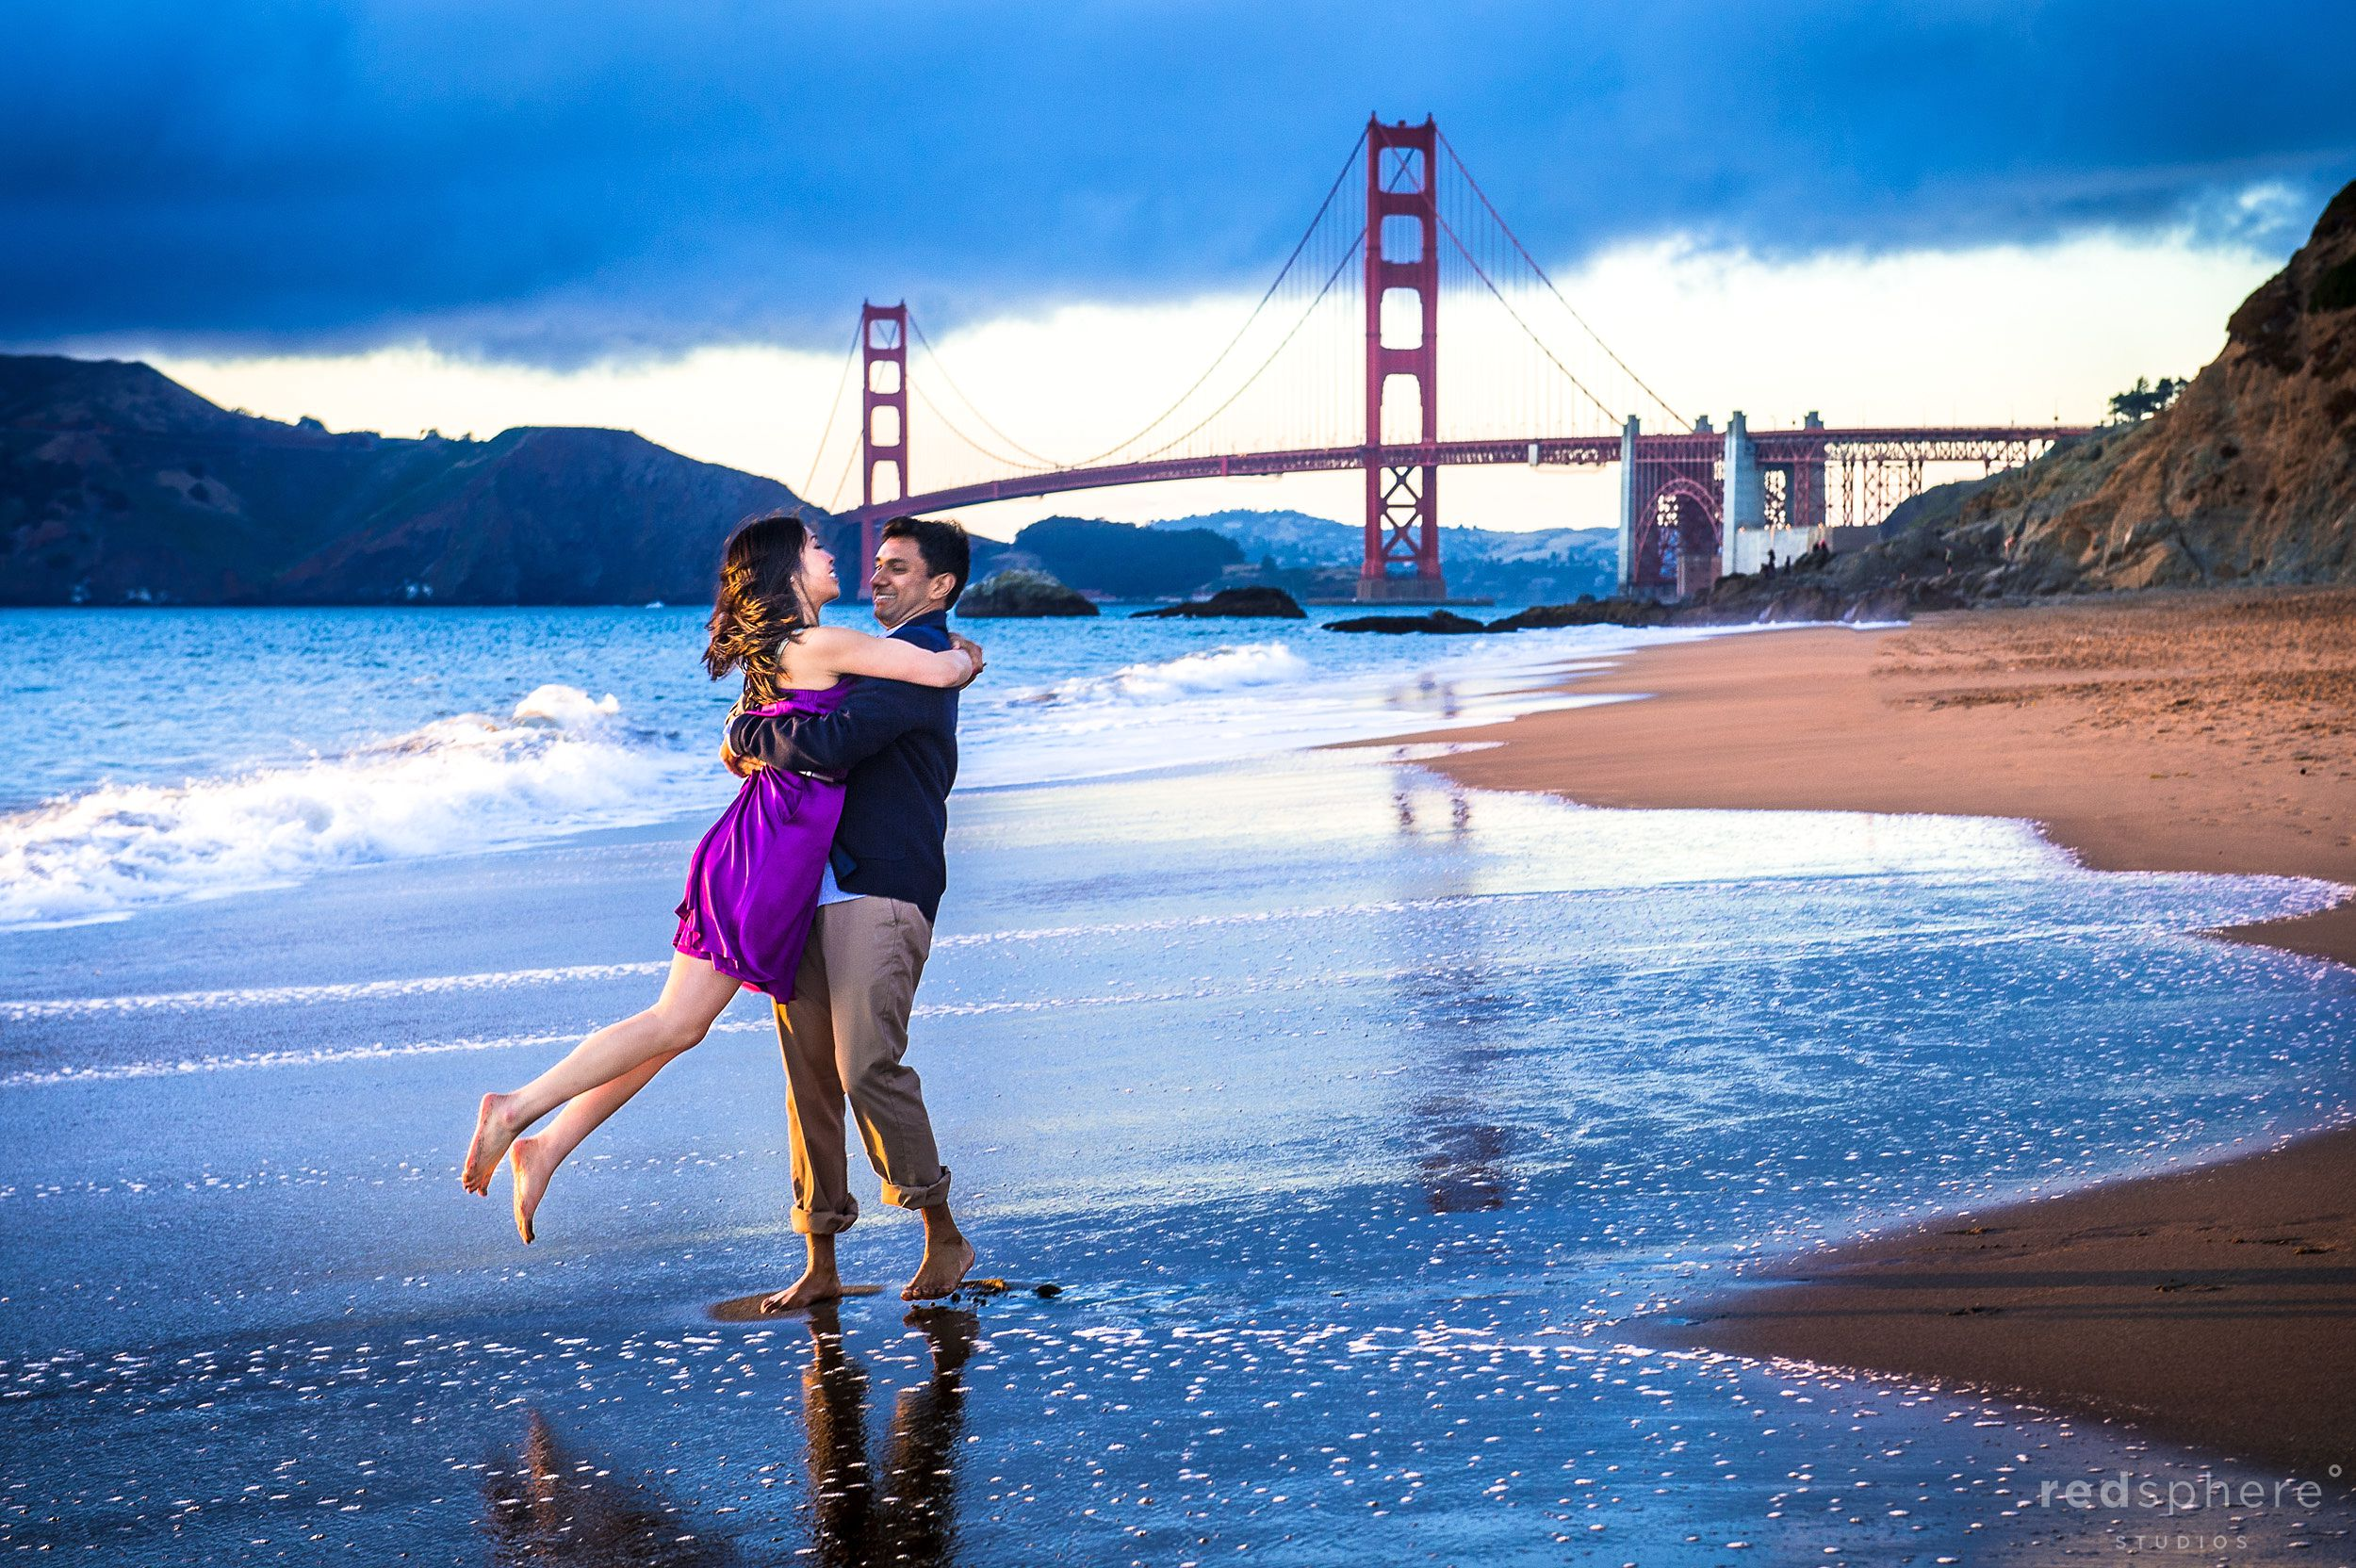 Man Carries Woman on Shoreline of Baker Beach, Cute Engagement Moments